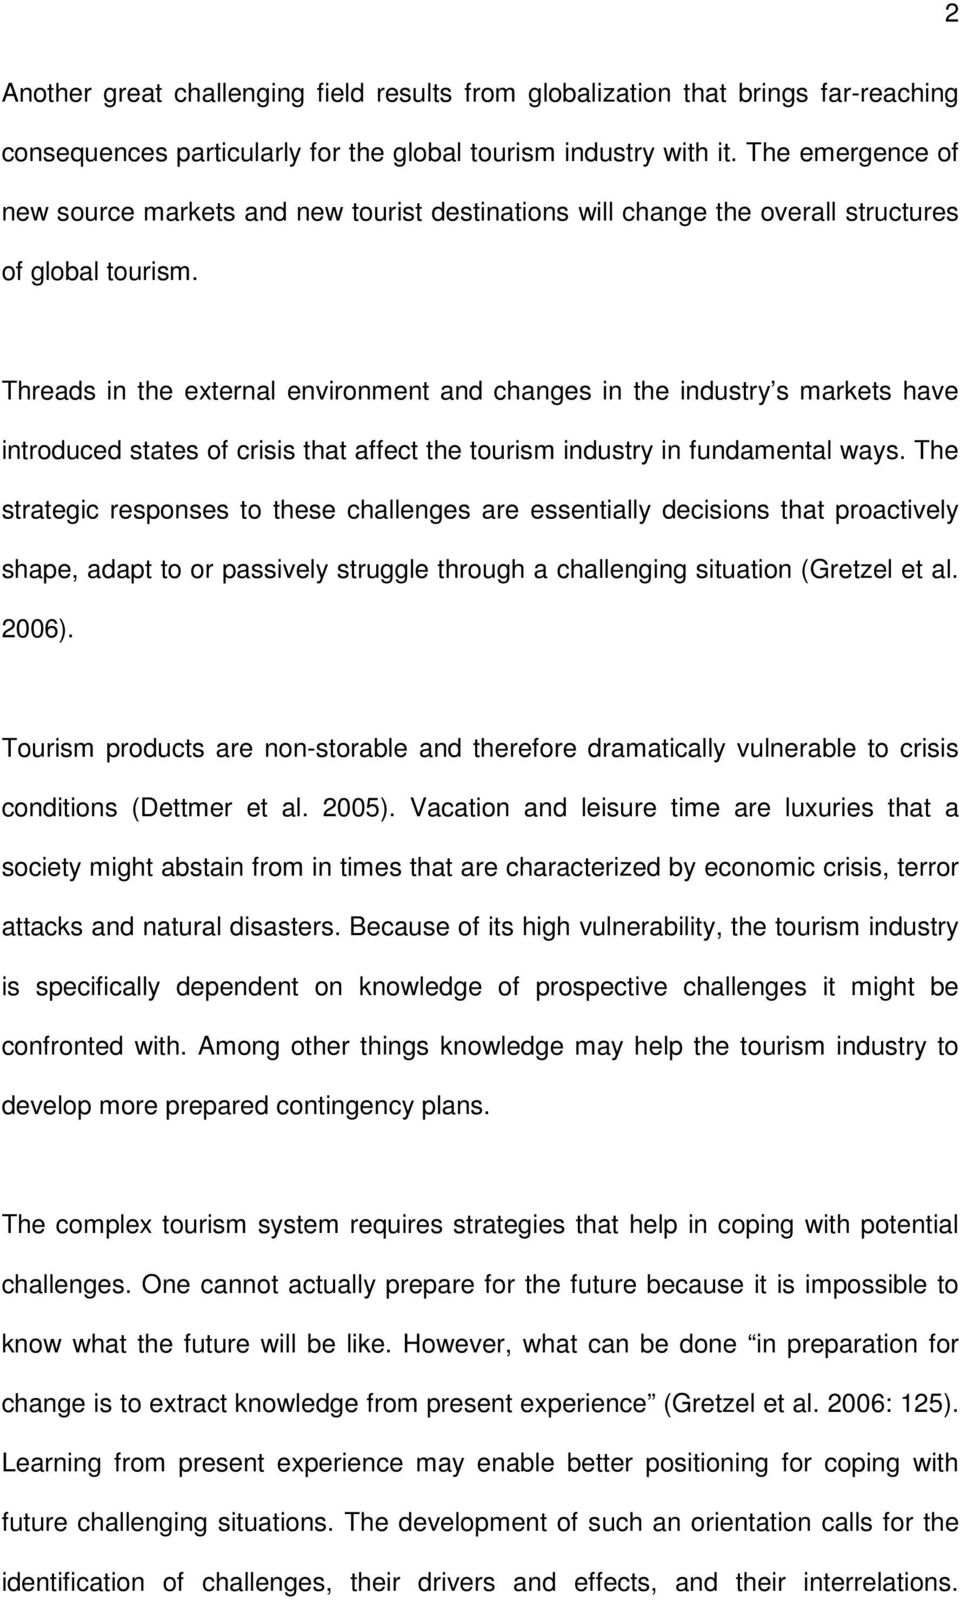 Threads in the external environment and changes in the industry s markets have introduced states of crisis that affect the tourism industry in fundamental ways.